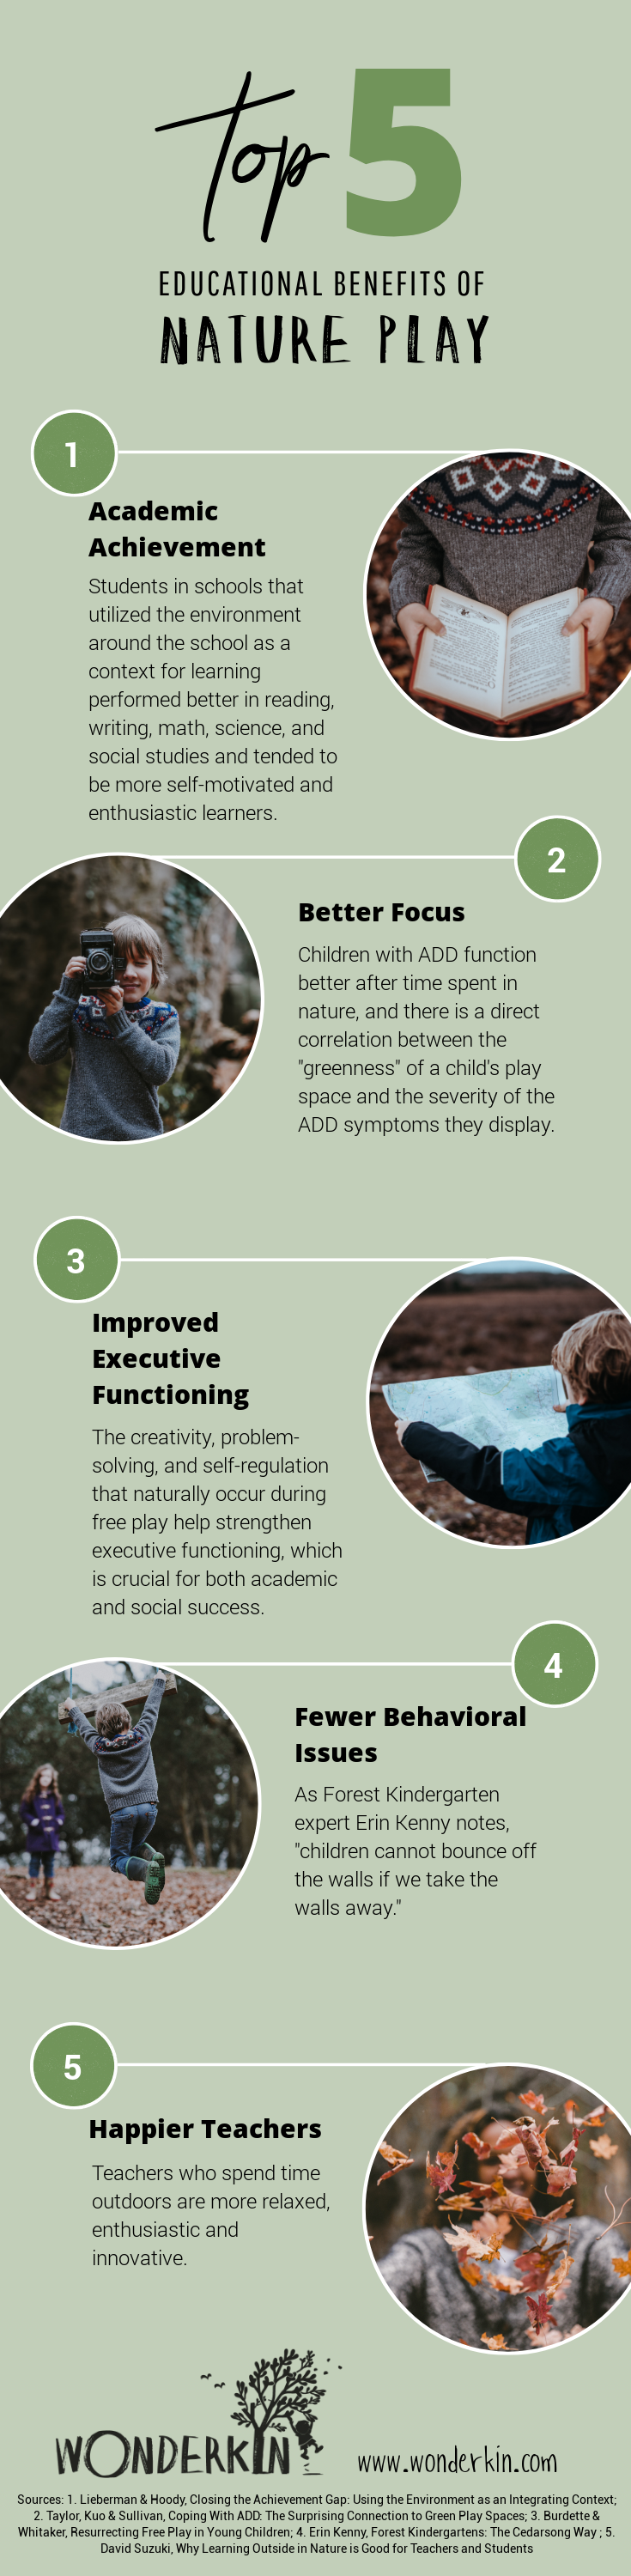 Wonderkin | Top 5 Educational Benefits of Nature Play